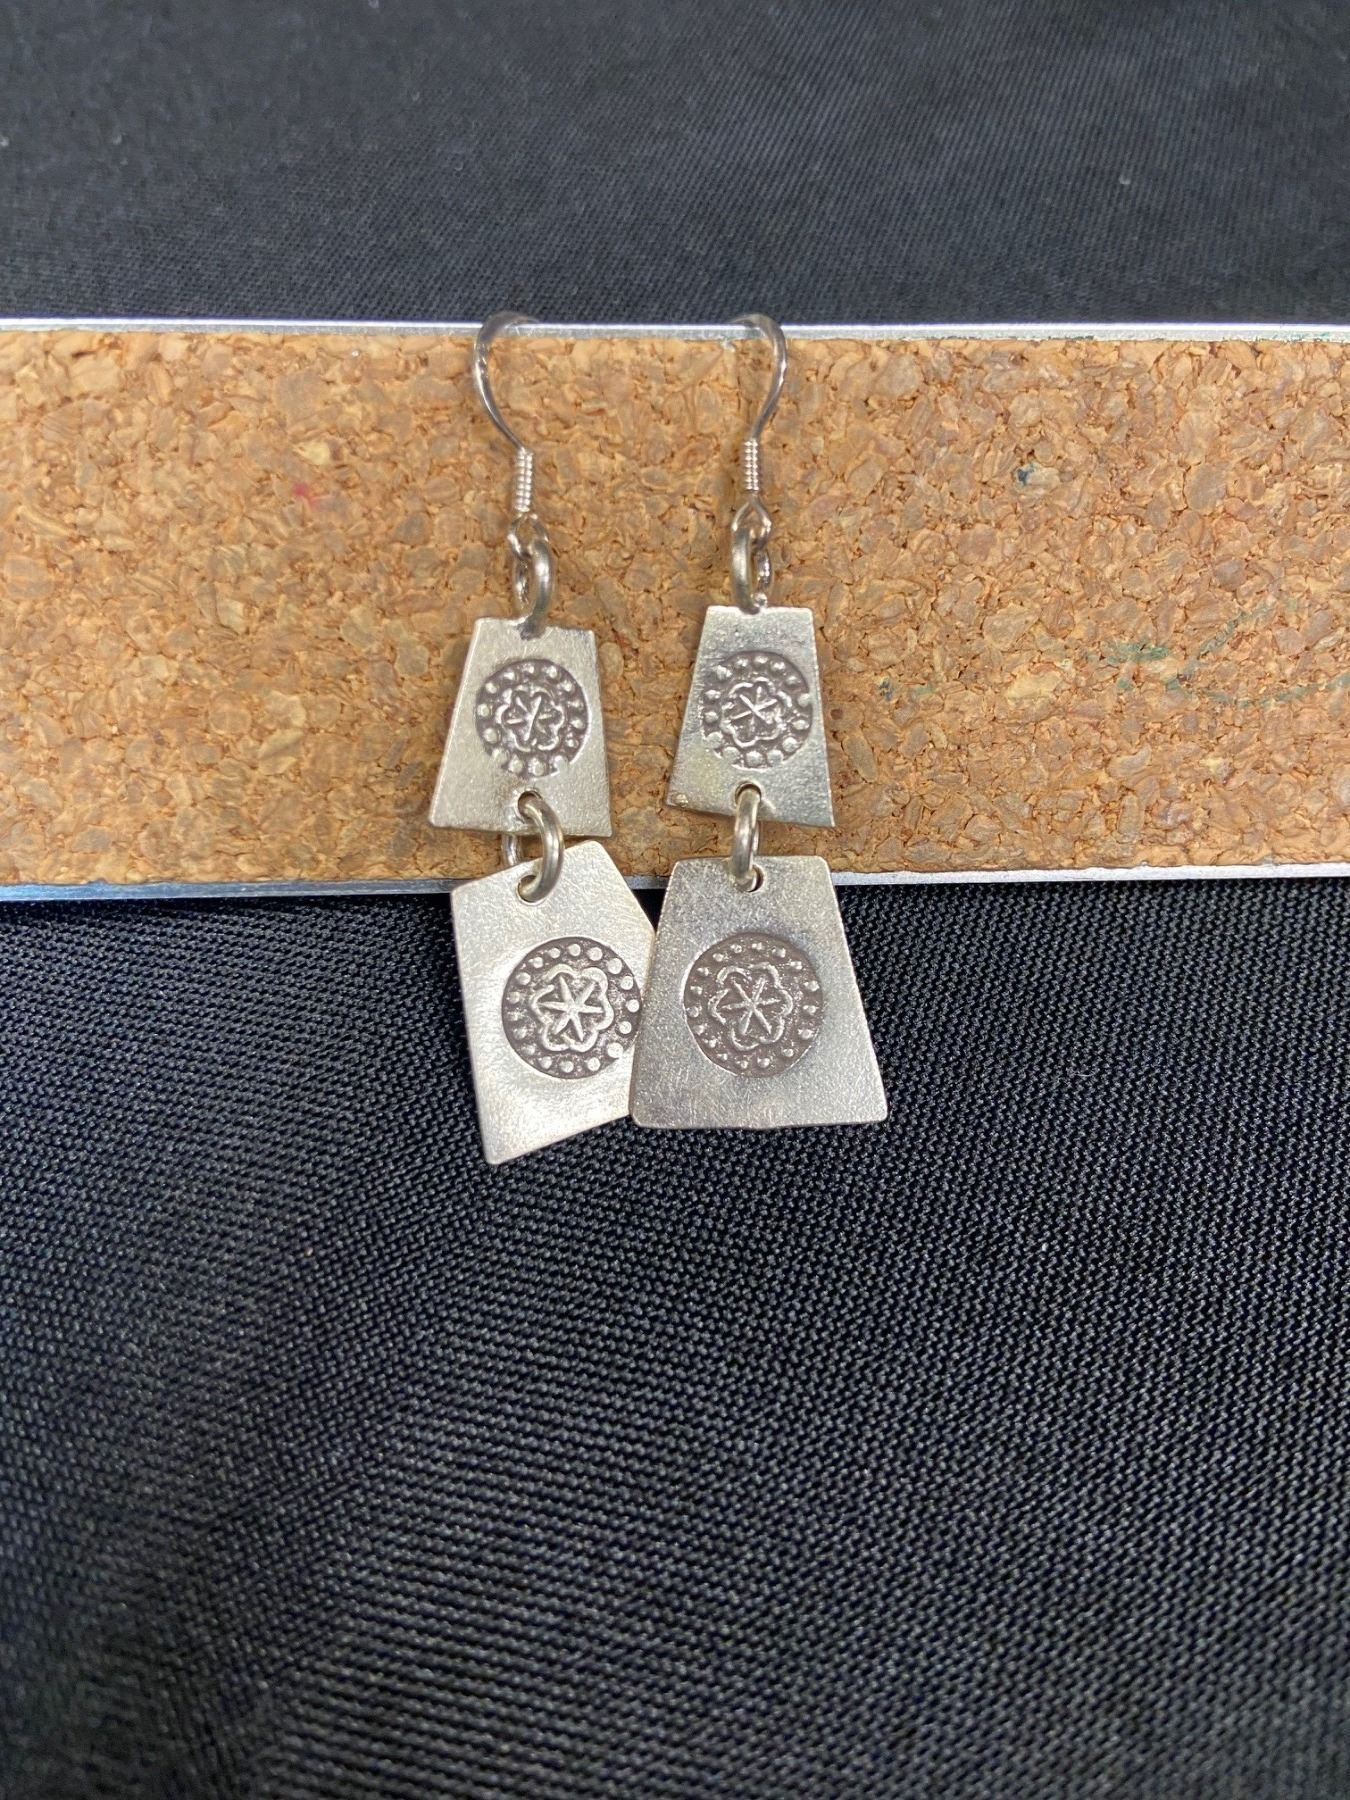 Silver Pendant Earrings